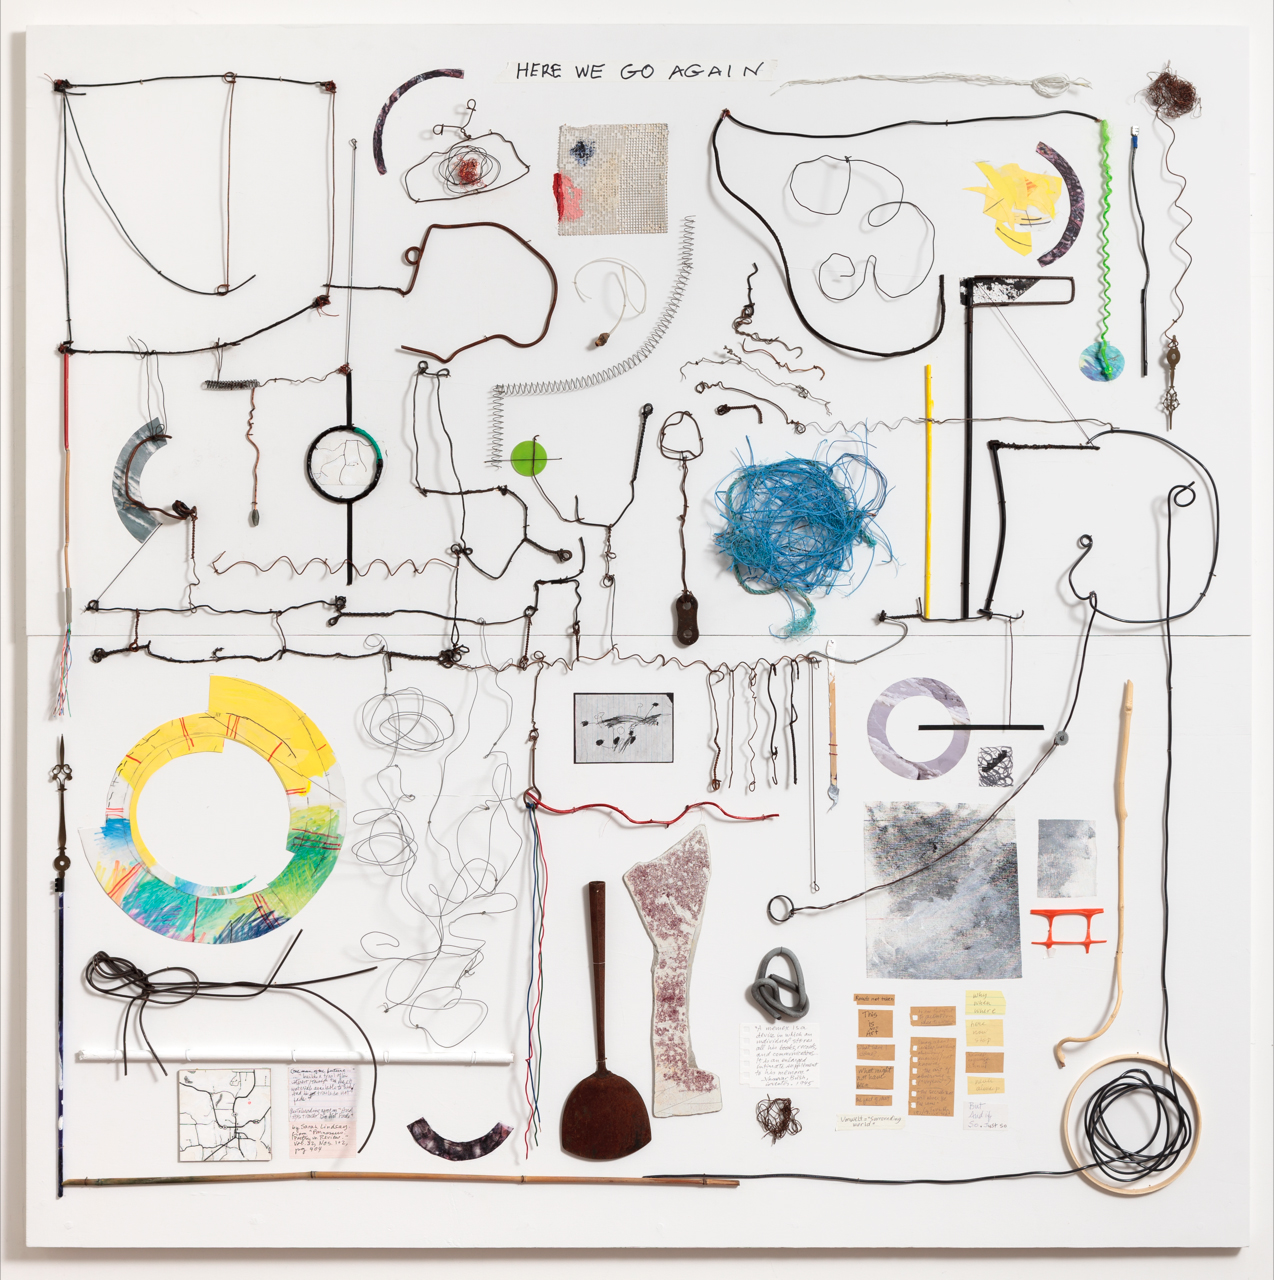 Here We Go Again , 2016, Wood, wire, paper, acrylic, and misc. found objects on birch plywood, 54 x 54 inches. Photo by Jeanette May